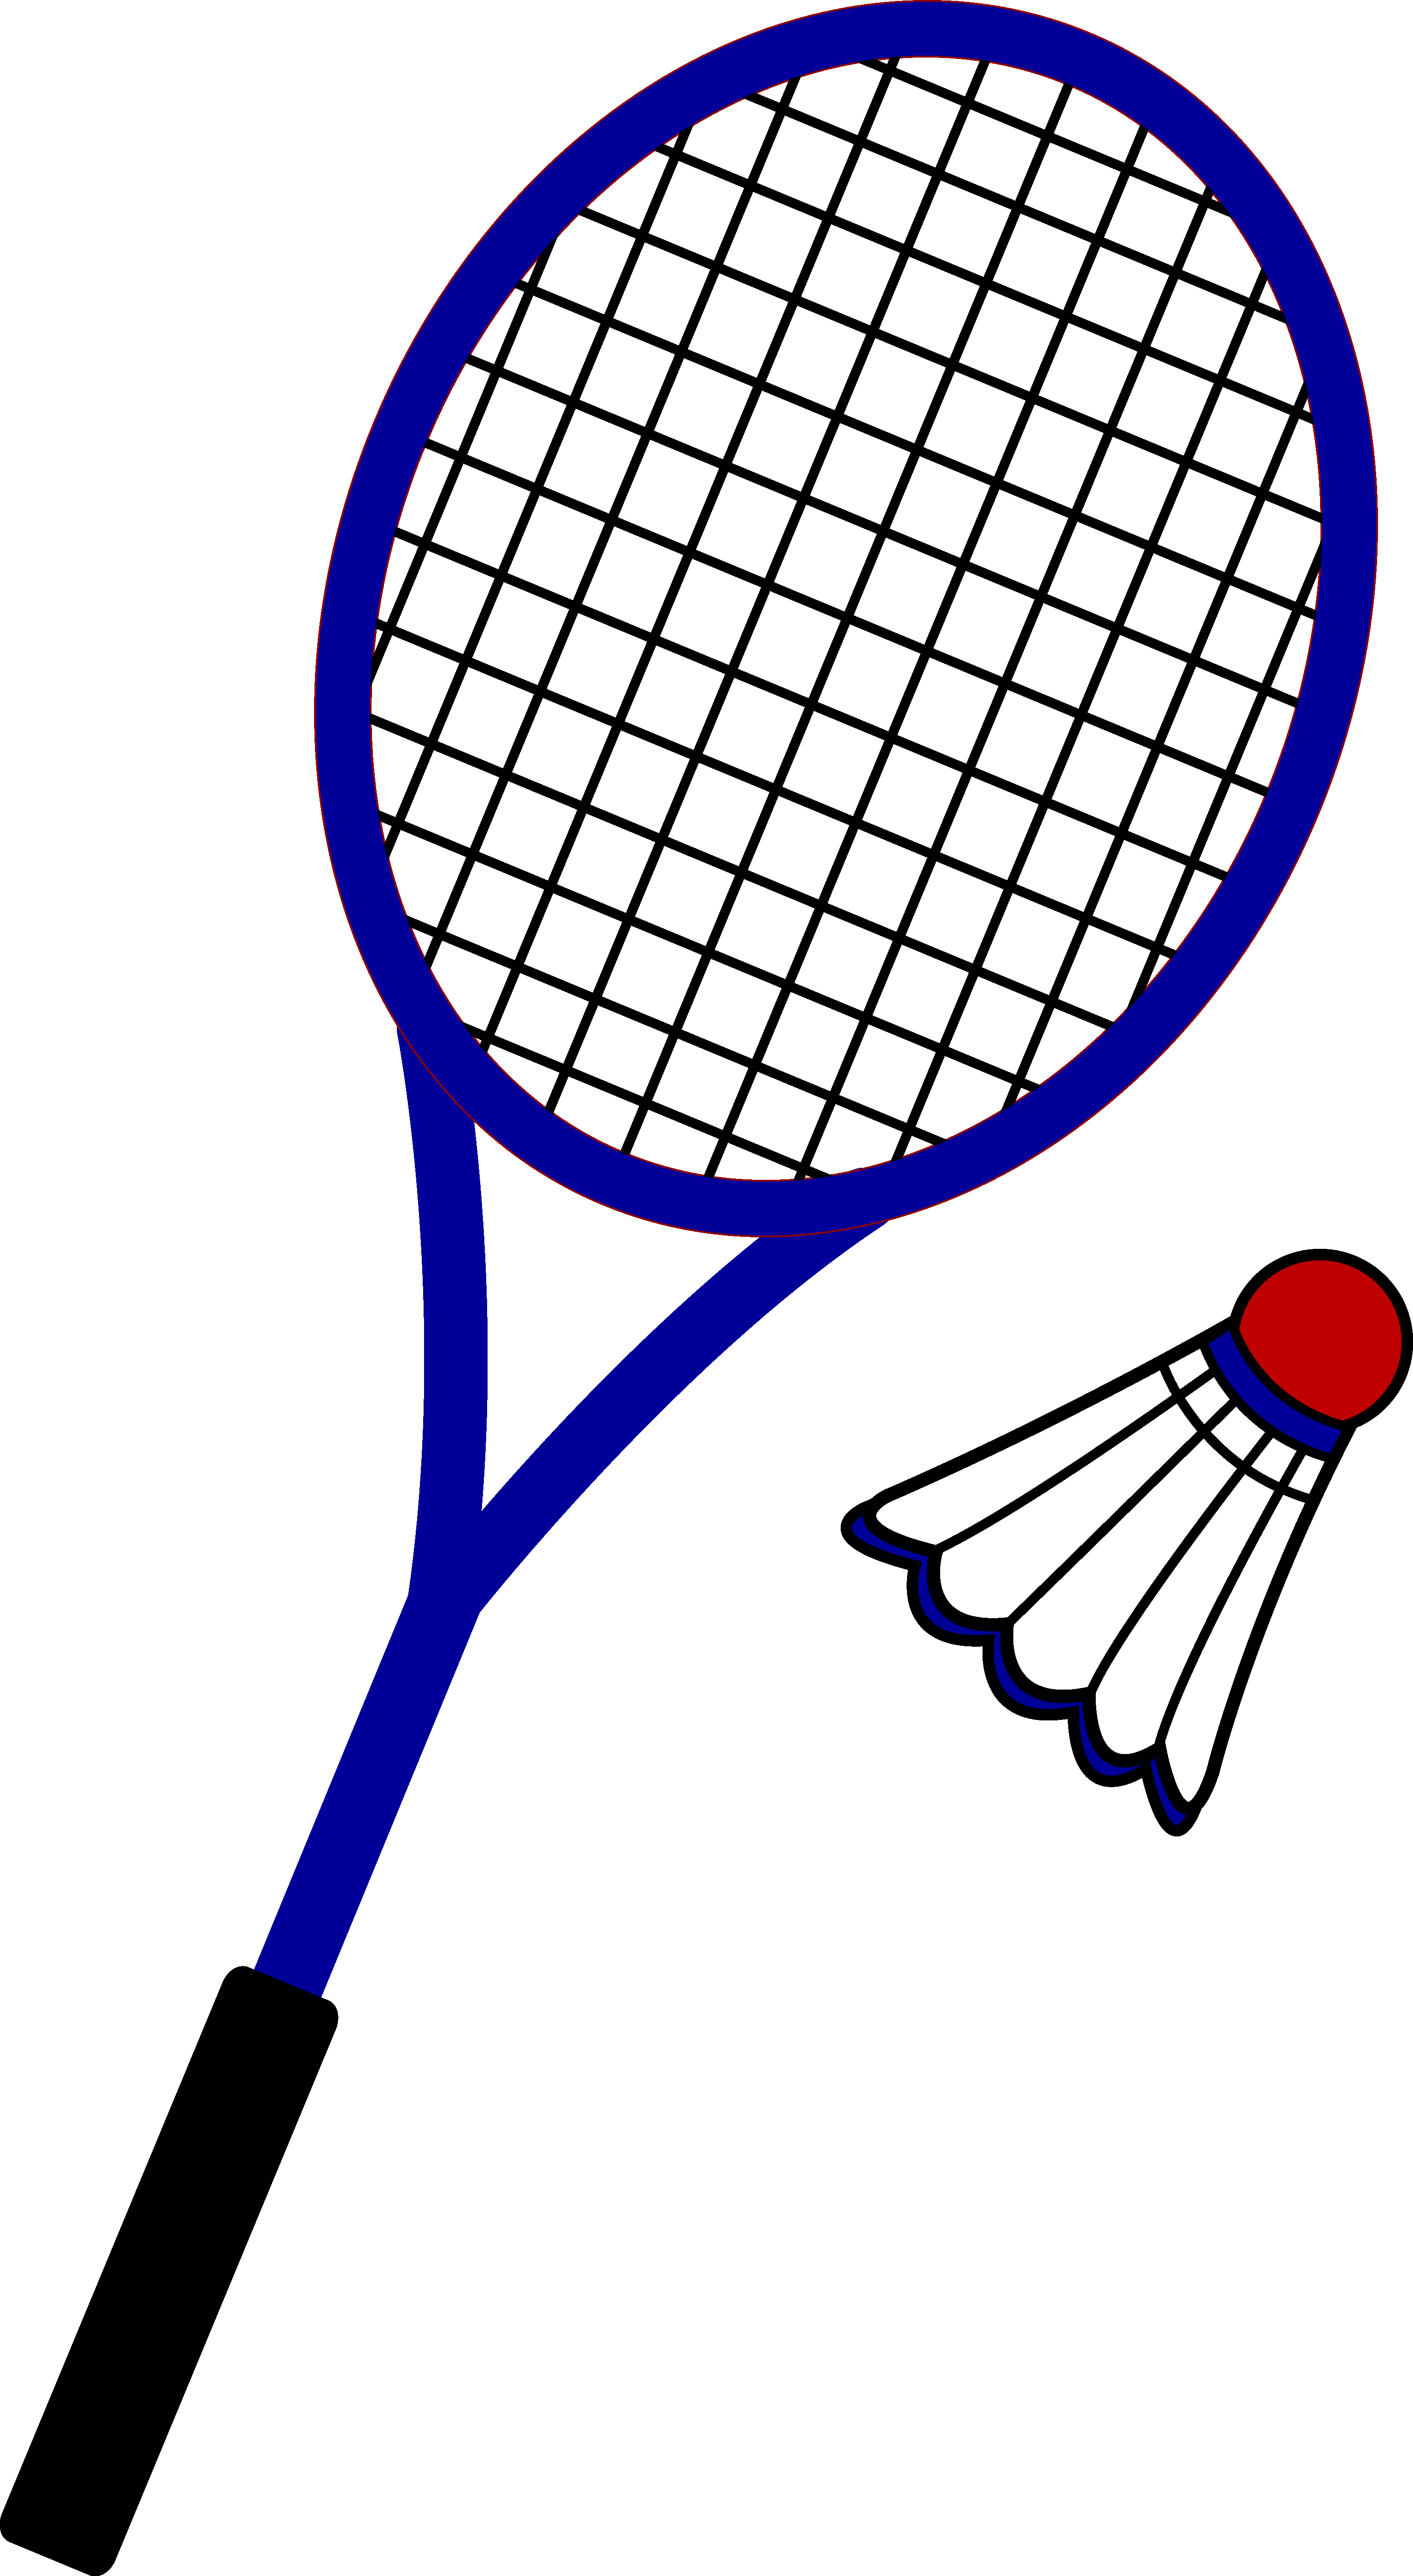 Badminton clipart. Racquet and birdie free